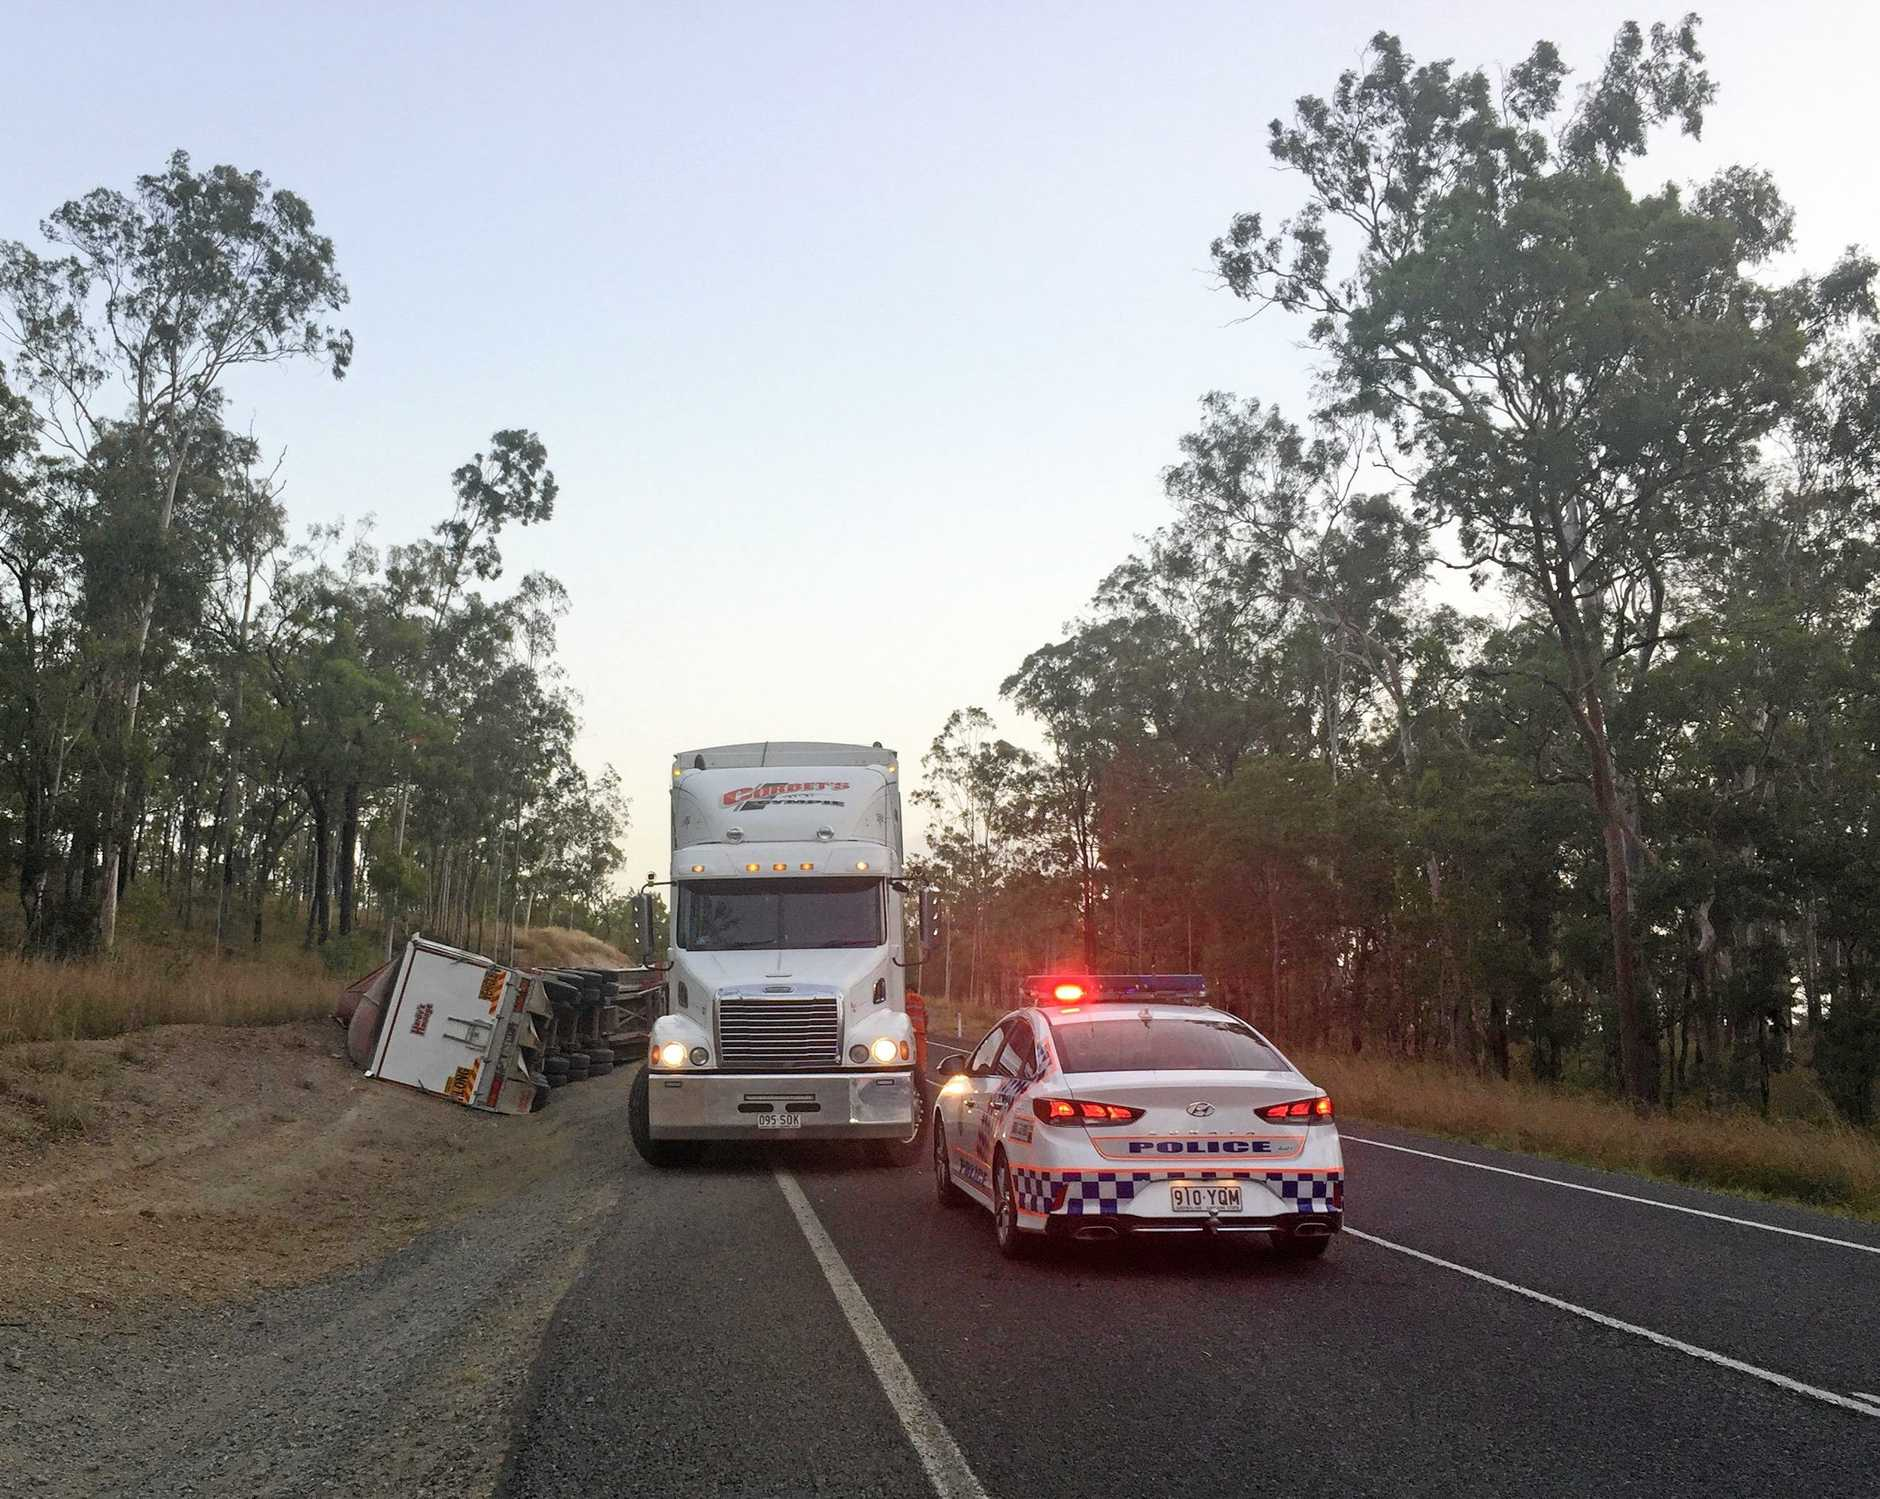 The truck rolled on the Burnett Highway south of Ban Ban Springs on February 14, 2019.